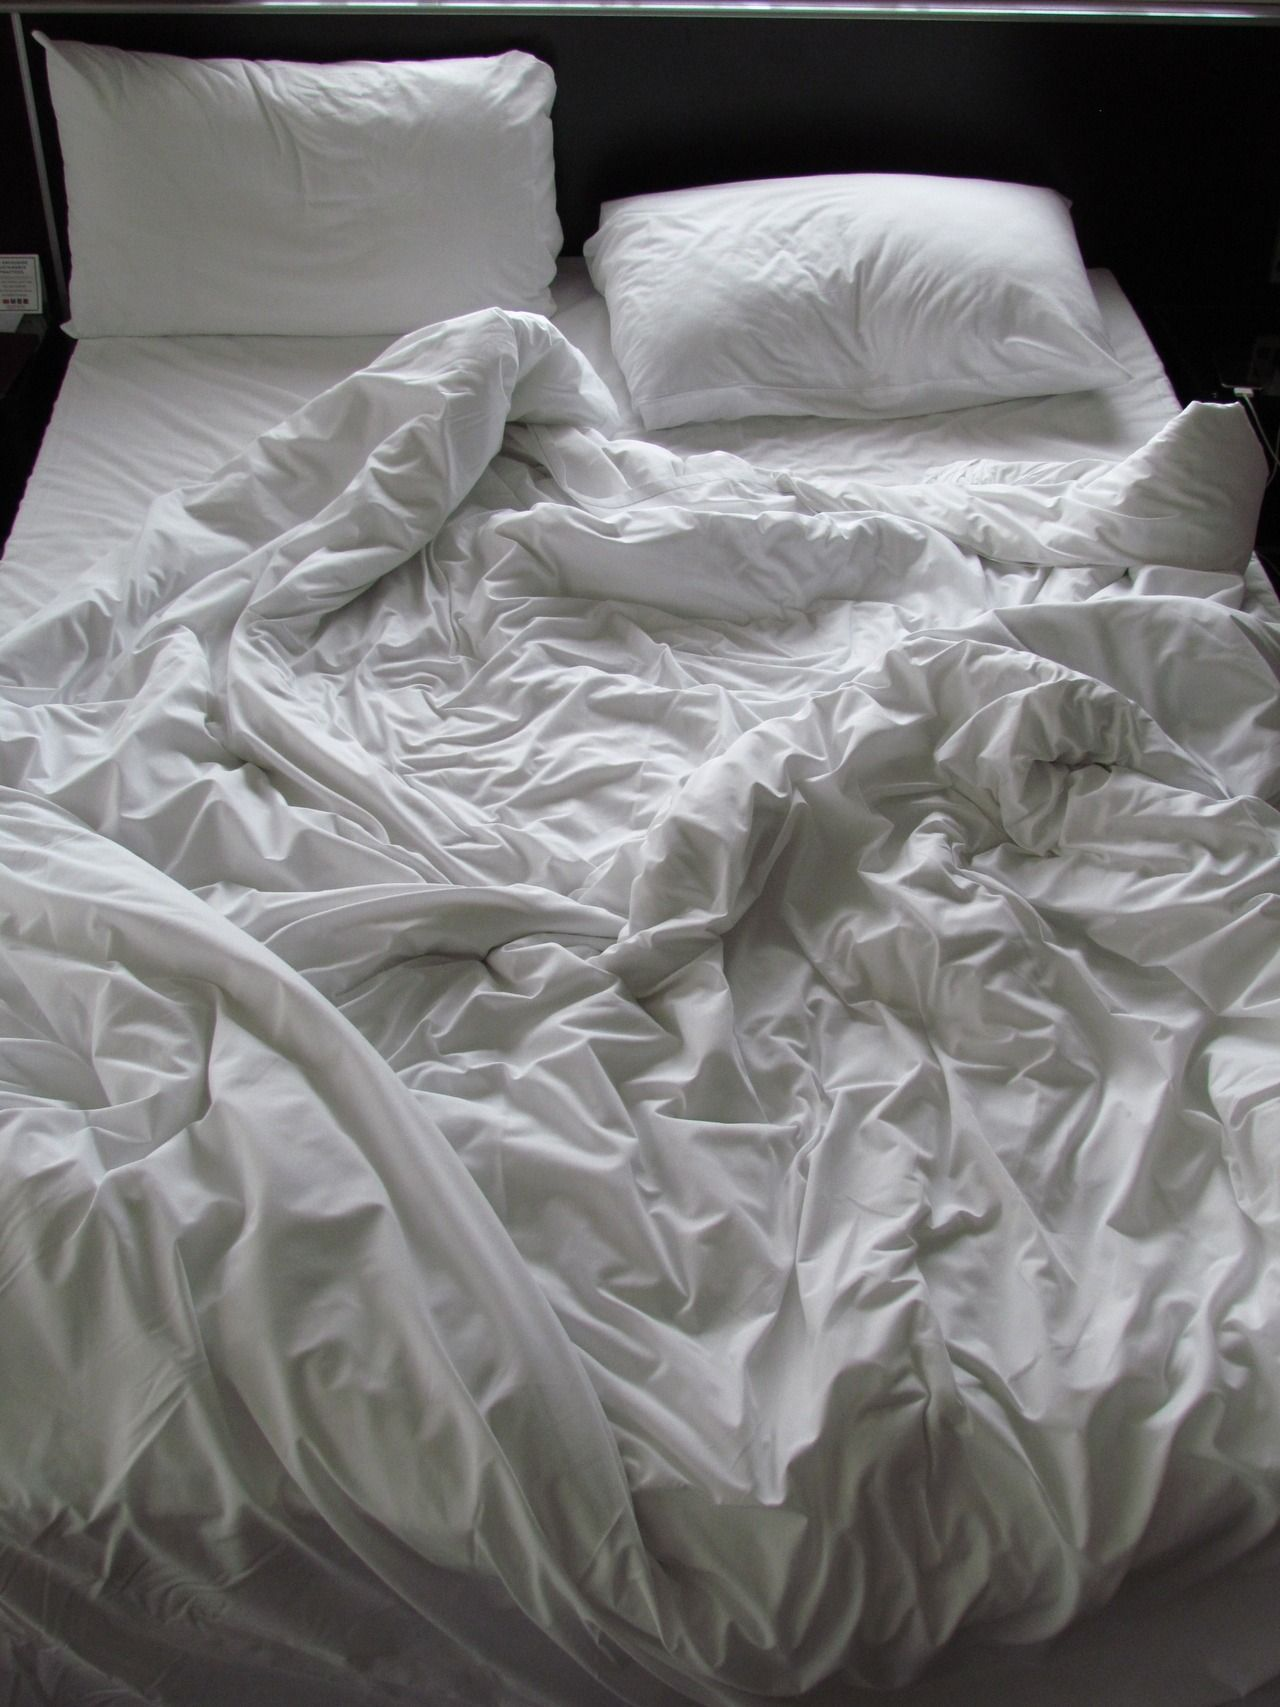 Image Result For Bed Sheets Tumblr Bed Beach Bedding Sets Simple Bed